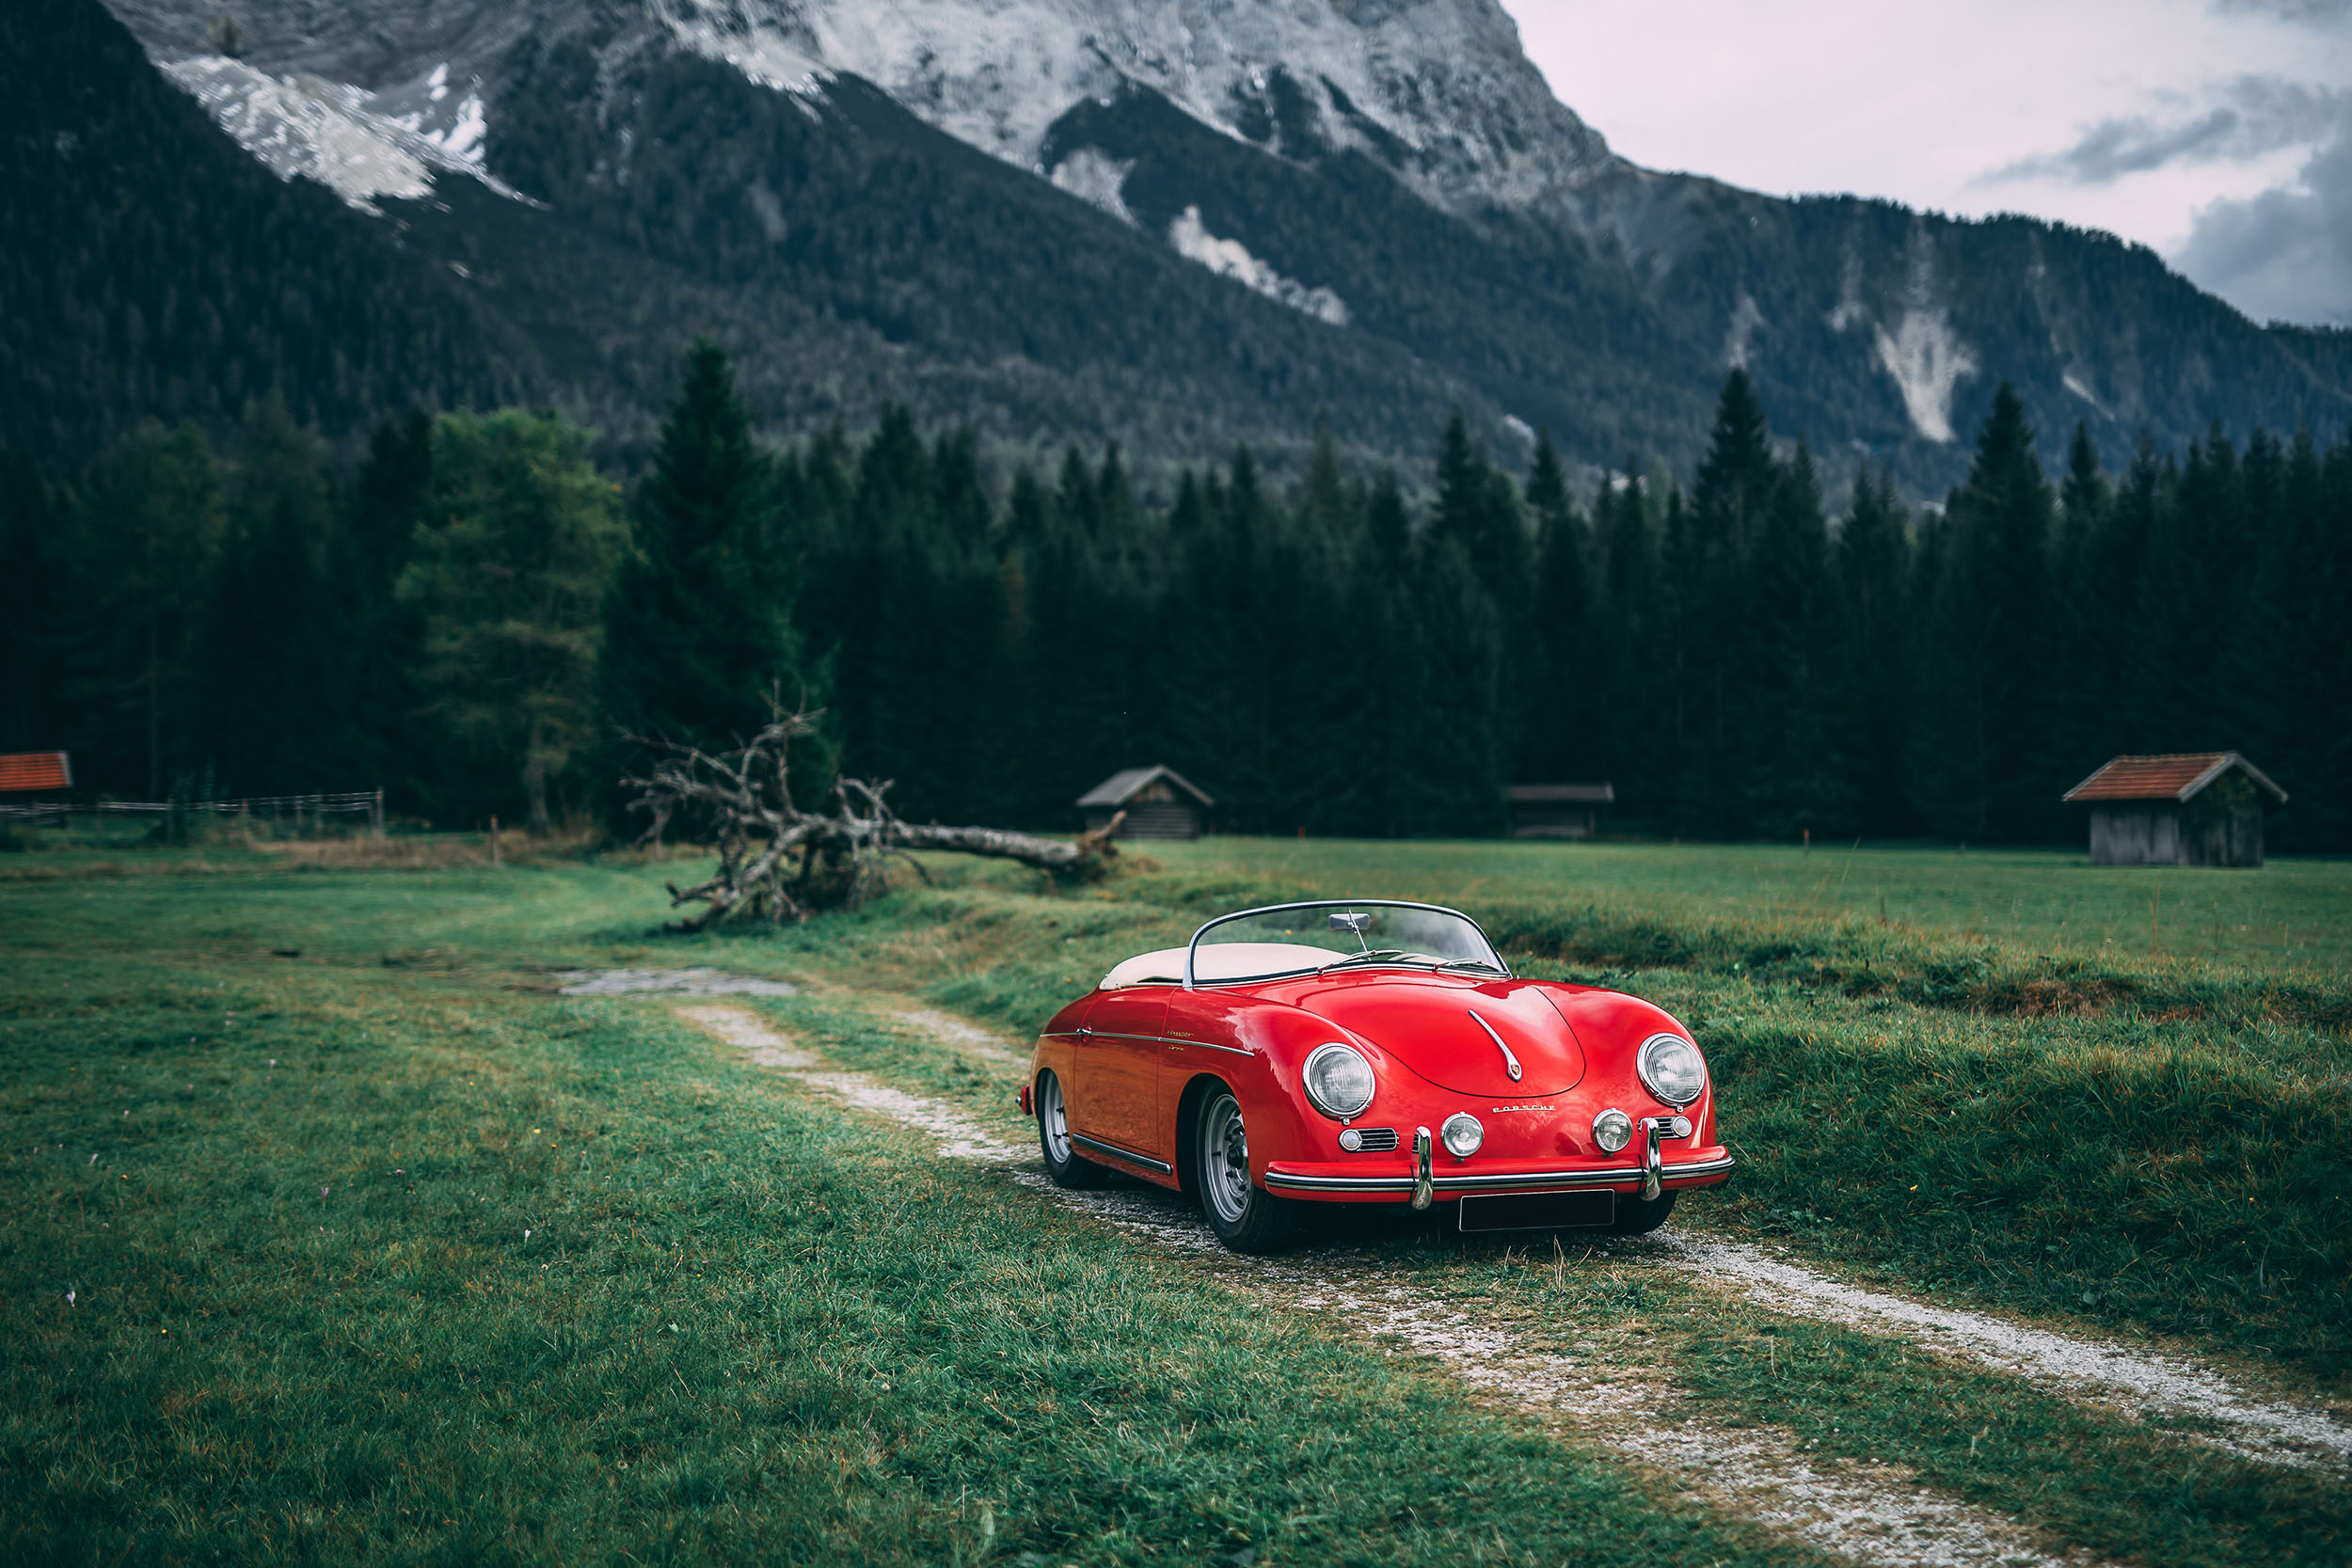 201021 1955 Porsche 356 Carrera 1500 GS Speedster by Reutter (Credit – ©2020 Courtesy of RM Sotheby's)